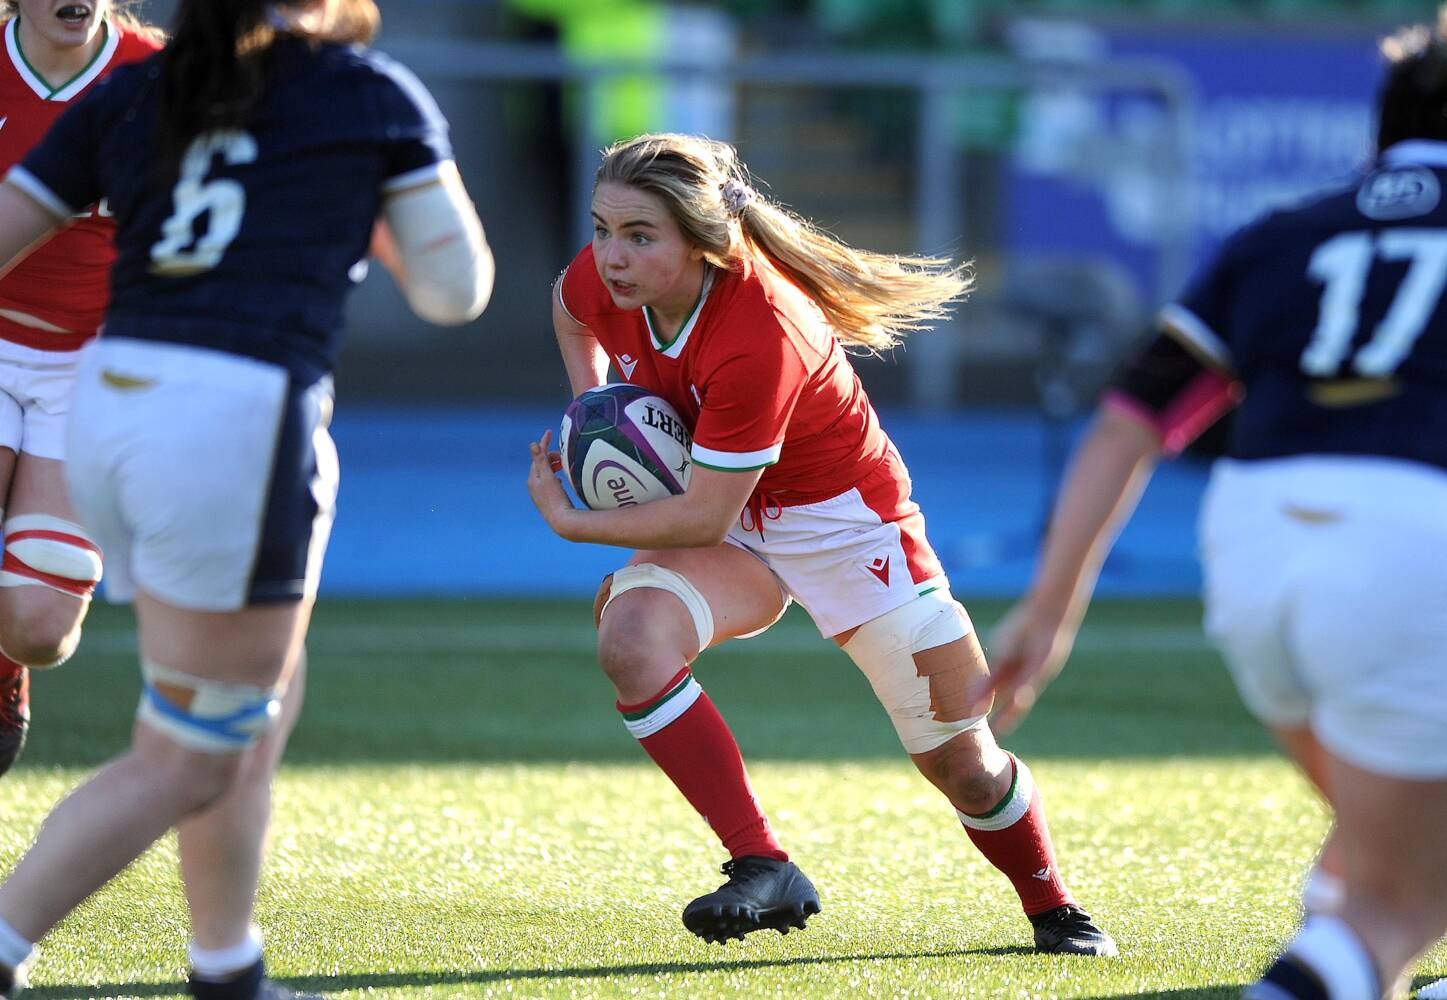 Manon Johnes gets new role at Oxford as a scrum half